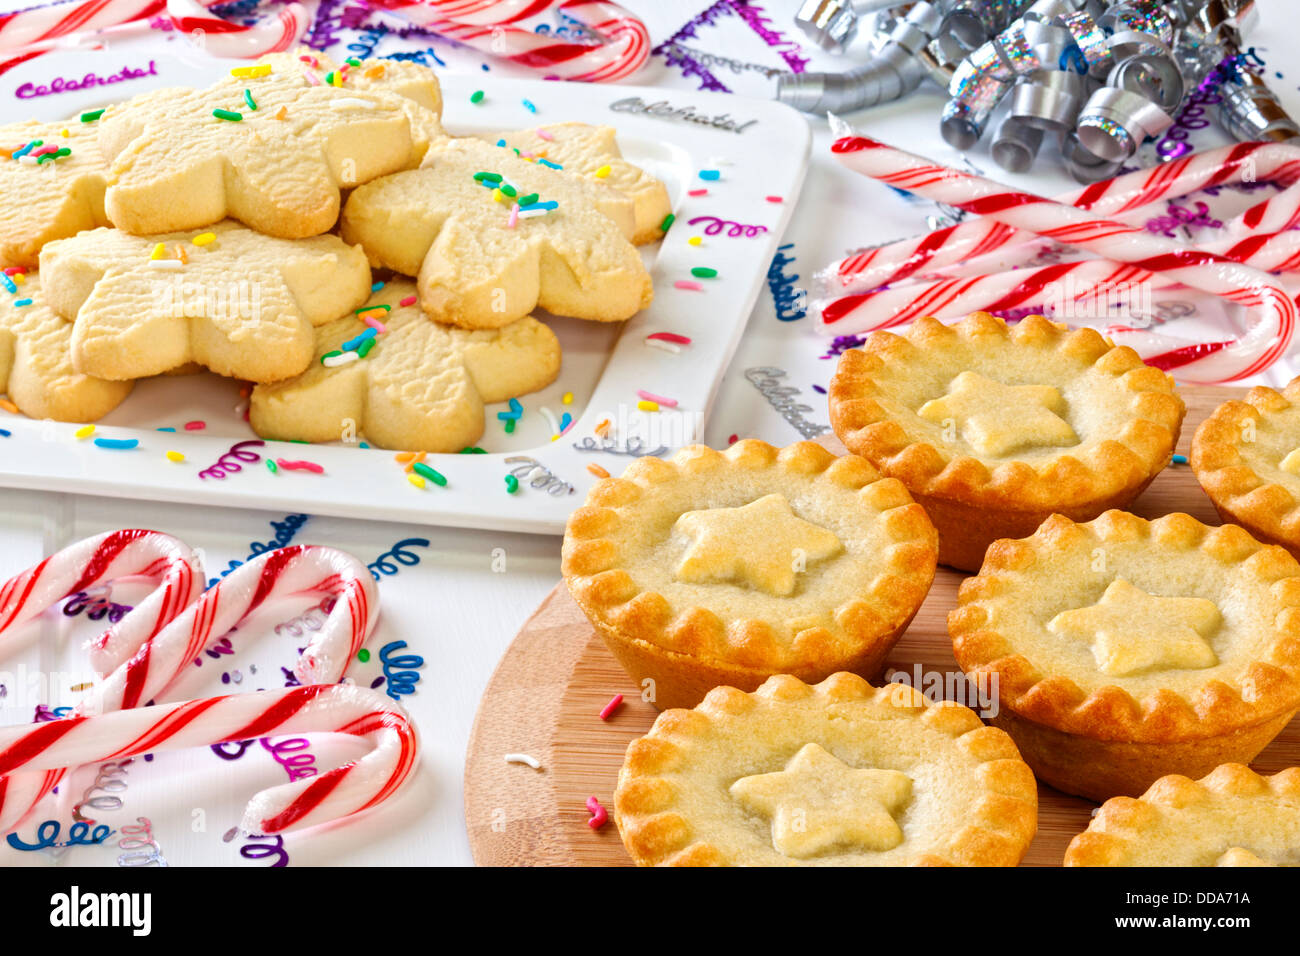 A buffet table set up for a celebration with Christmas fruit mince pies star shaped shortbread with sprinkles. & A buffet table set up for a celebration with Christmas fruit mince ...